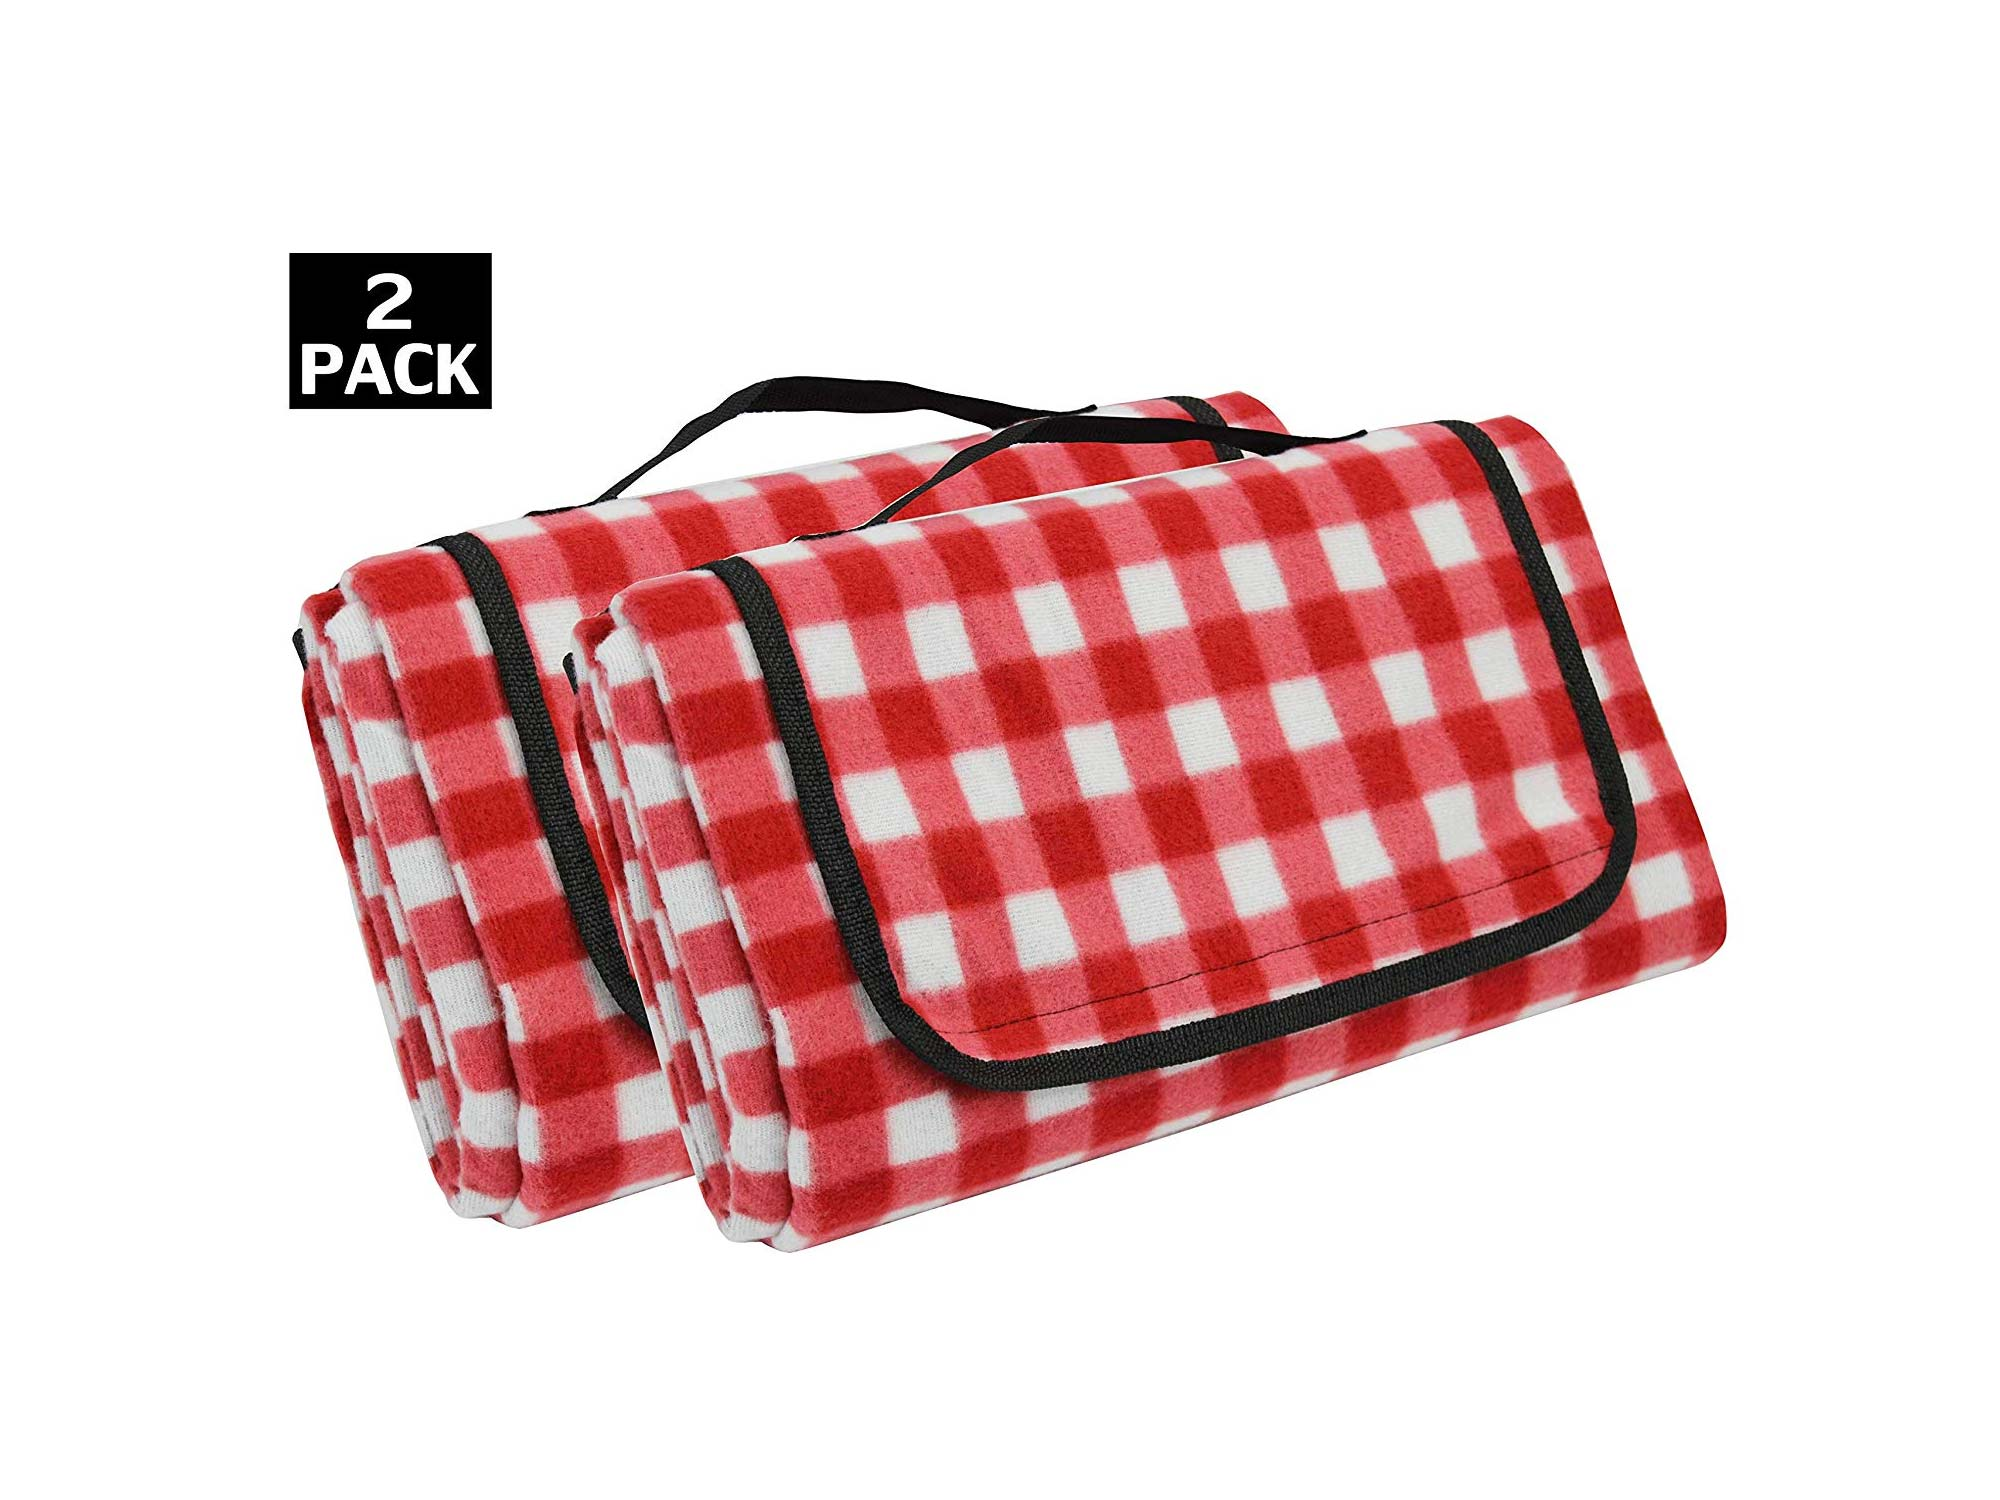 Red Checkered Oversized Beach Blanket Sand Proof